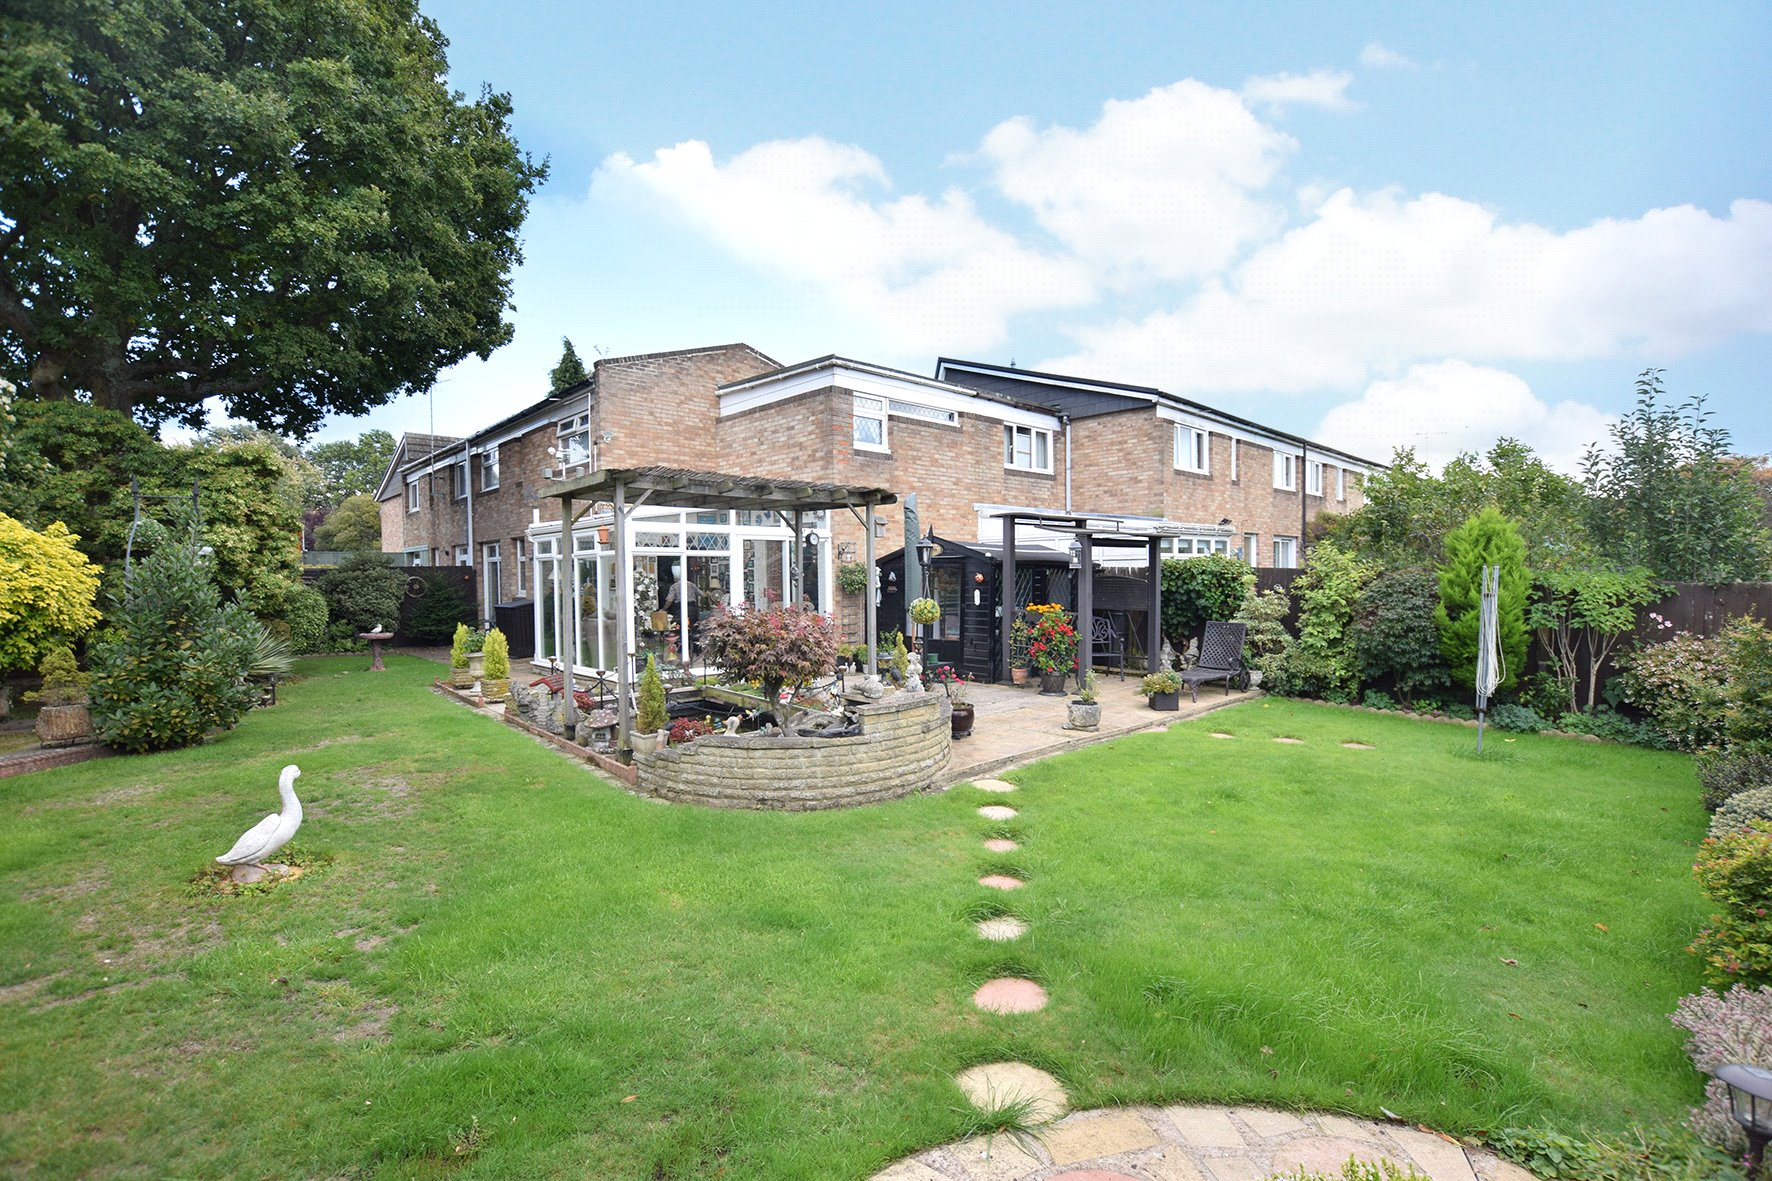 4 Bedrooms Terraced House for sale in Winscombe, Bracknell, Berkshire, RG12